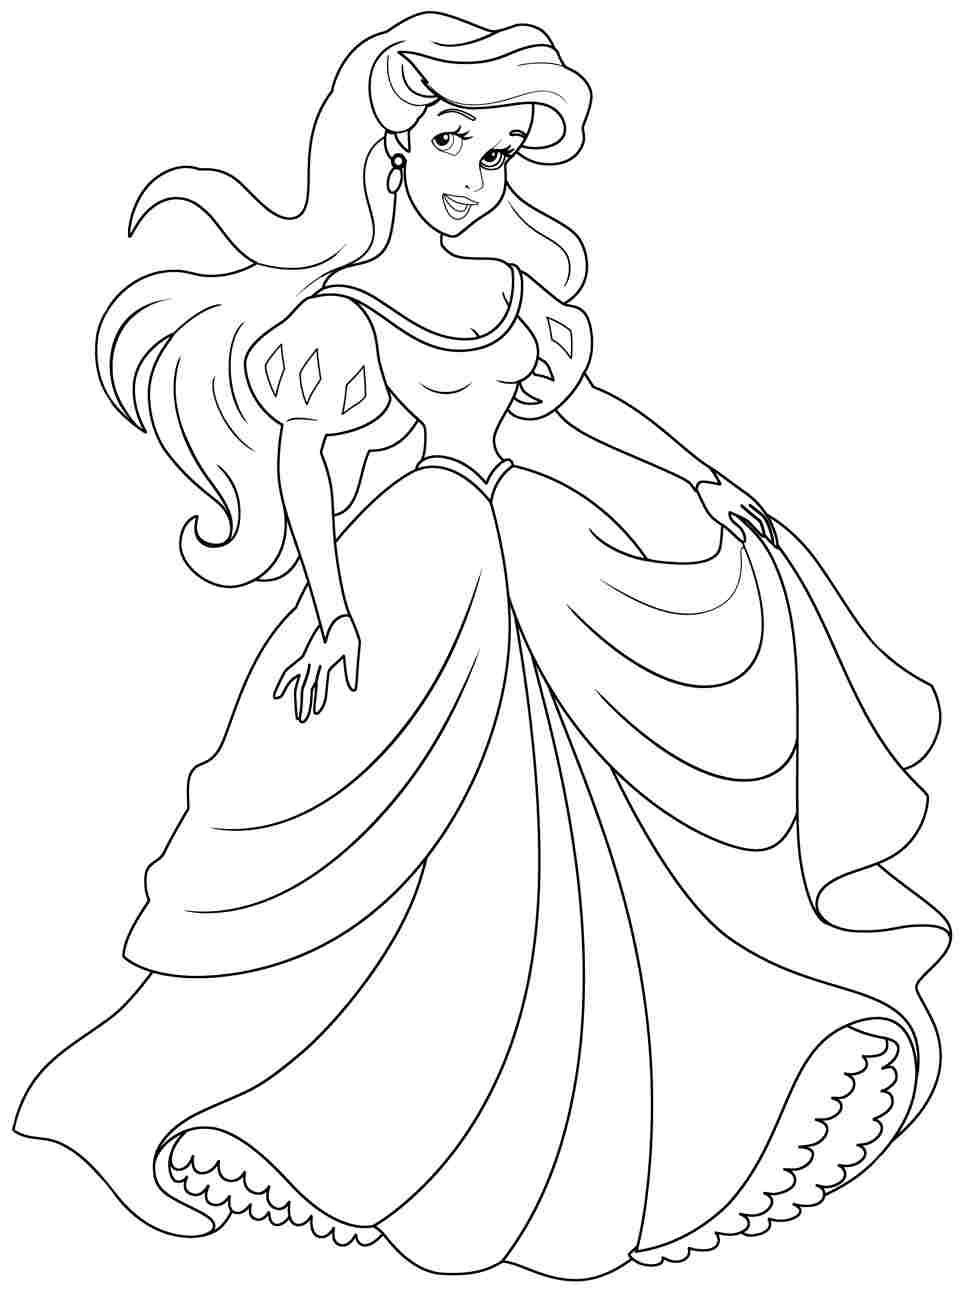 Young Princess Coloring Pages Google Search Disney Princess